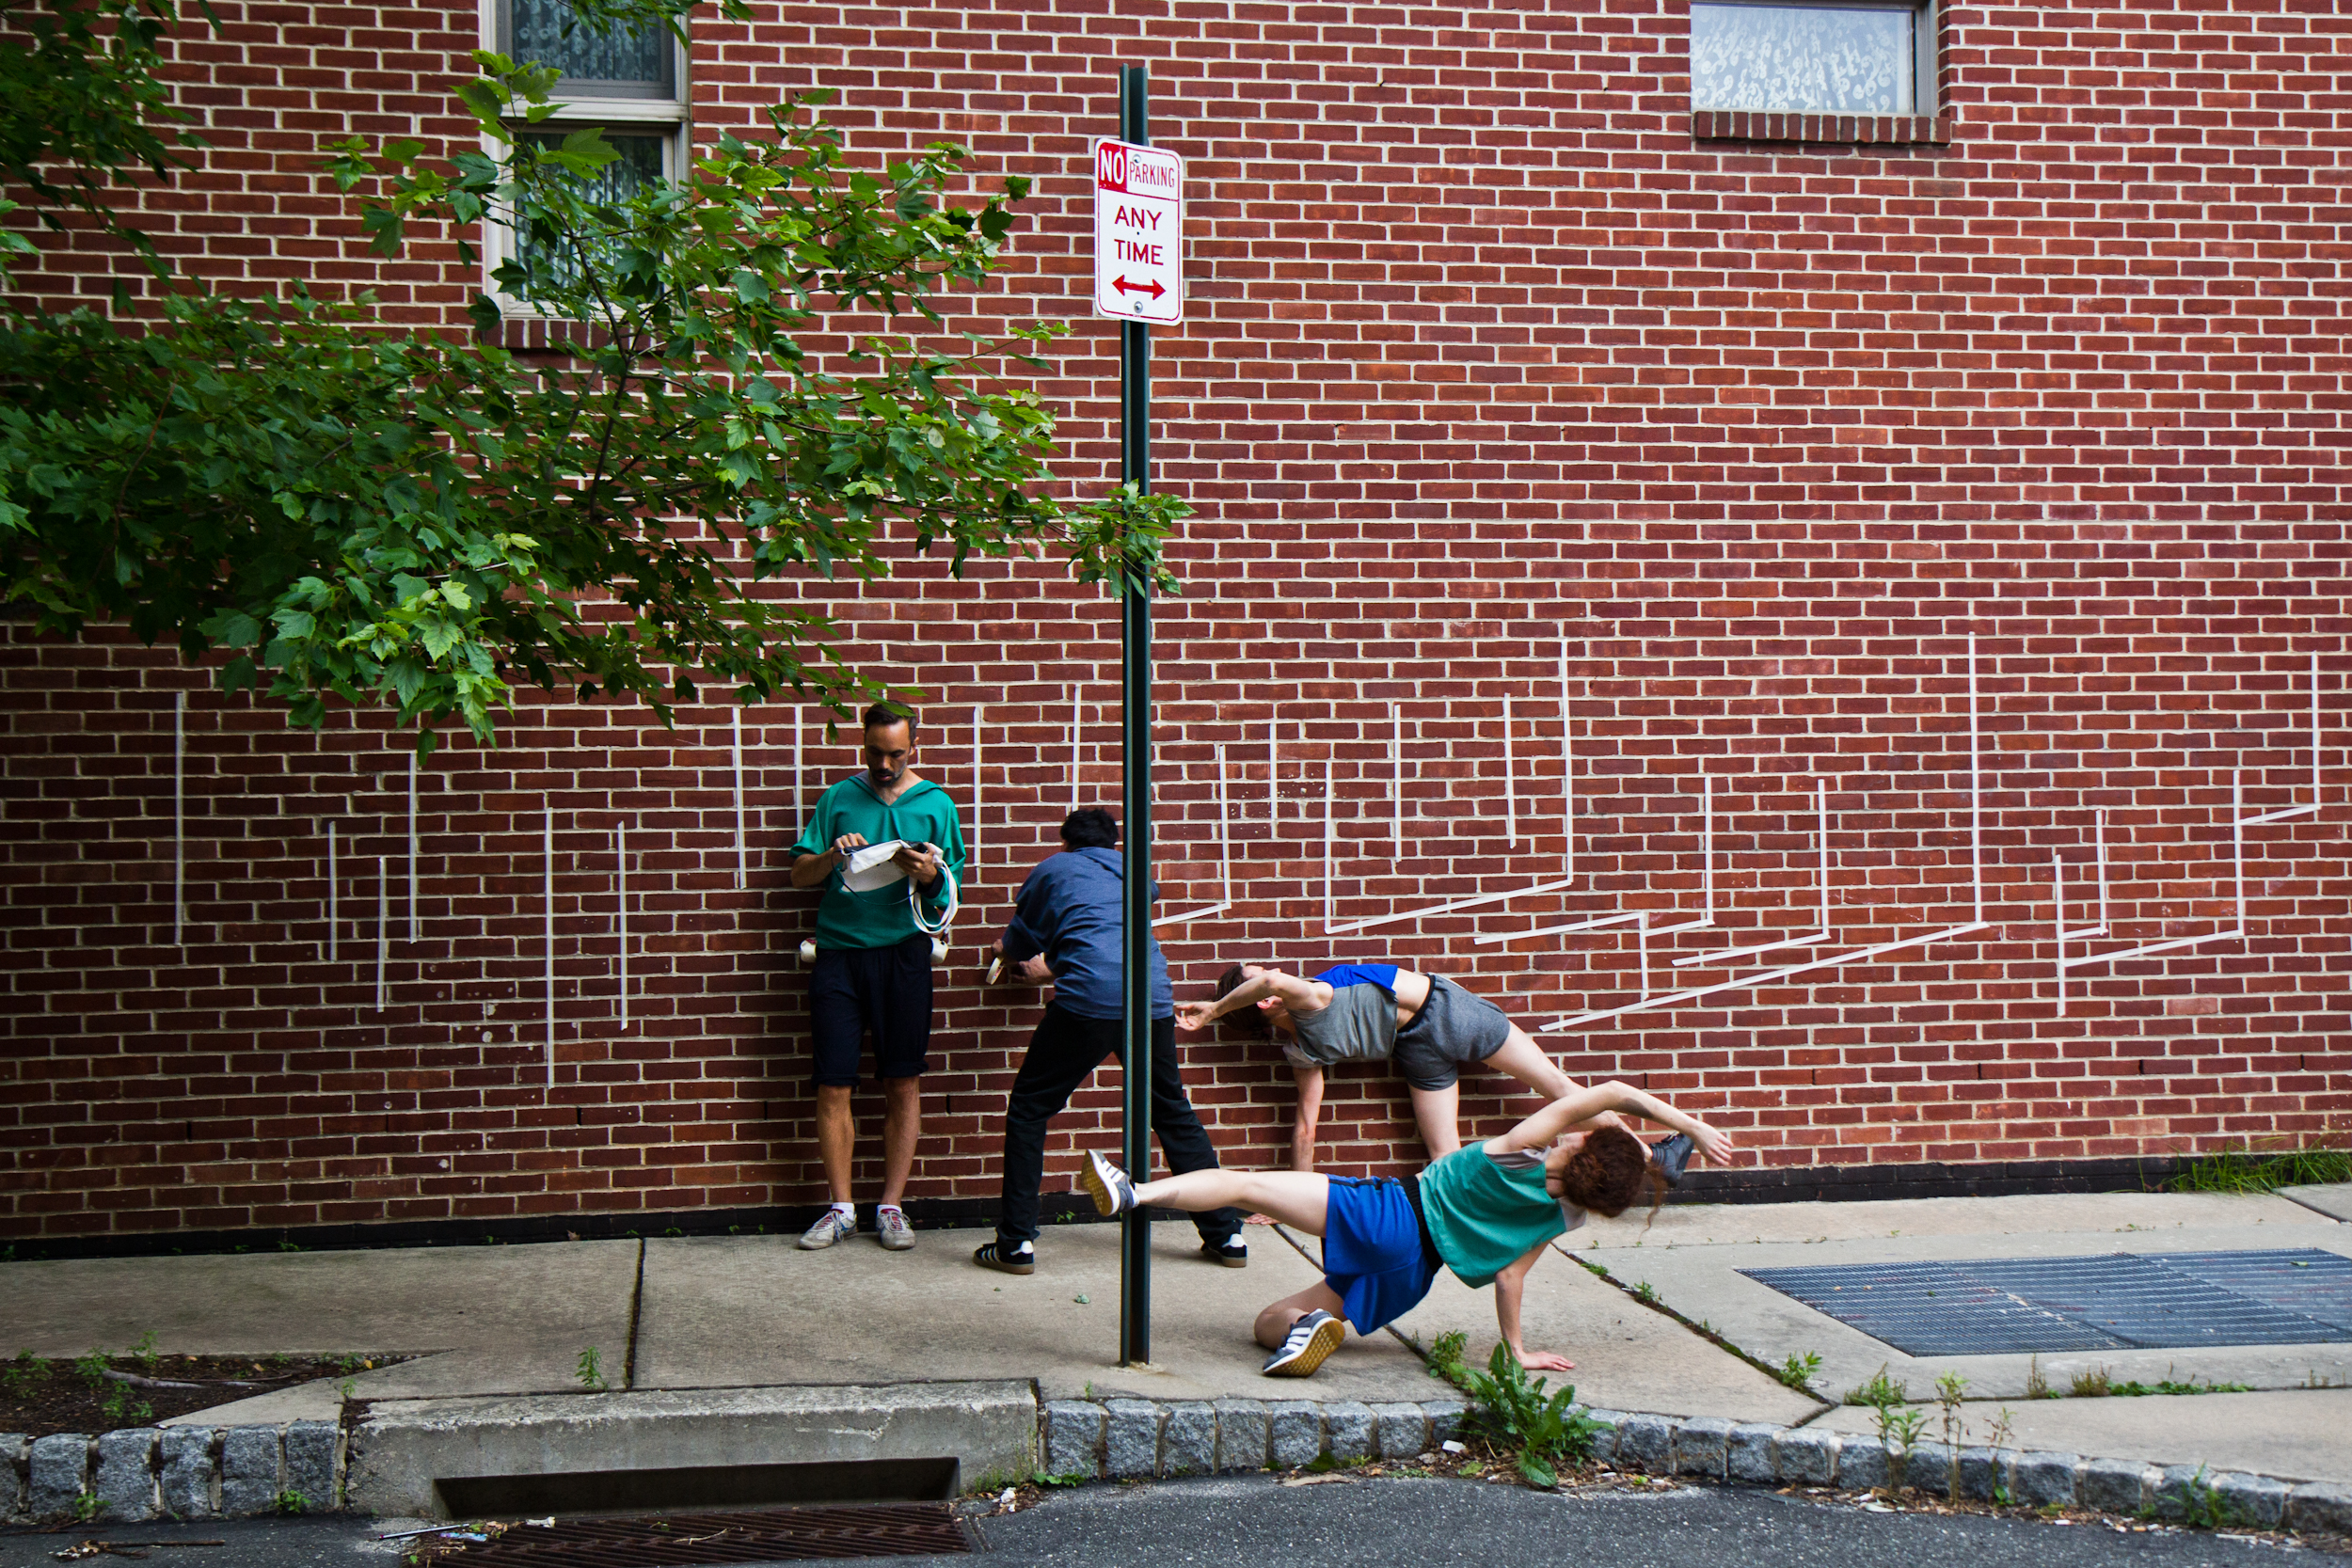 Members of the Swiss theater troupe Asphalt Piloten take to a Philadelphia street Tuesday evening for a performance of Tape Riot, part of the Philadelphia International Festival of the Arts.